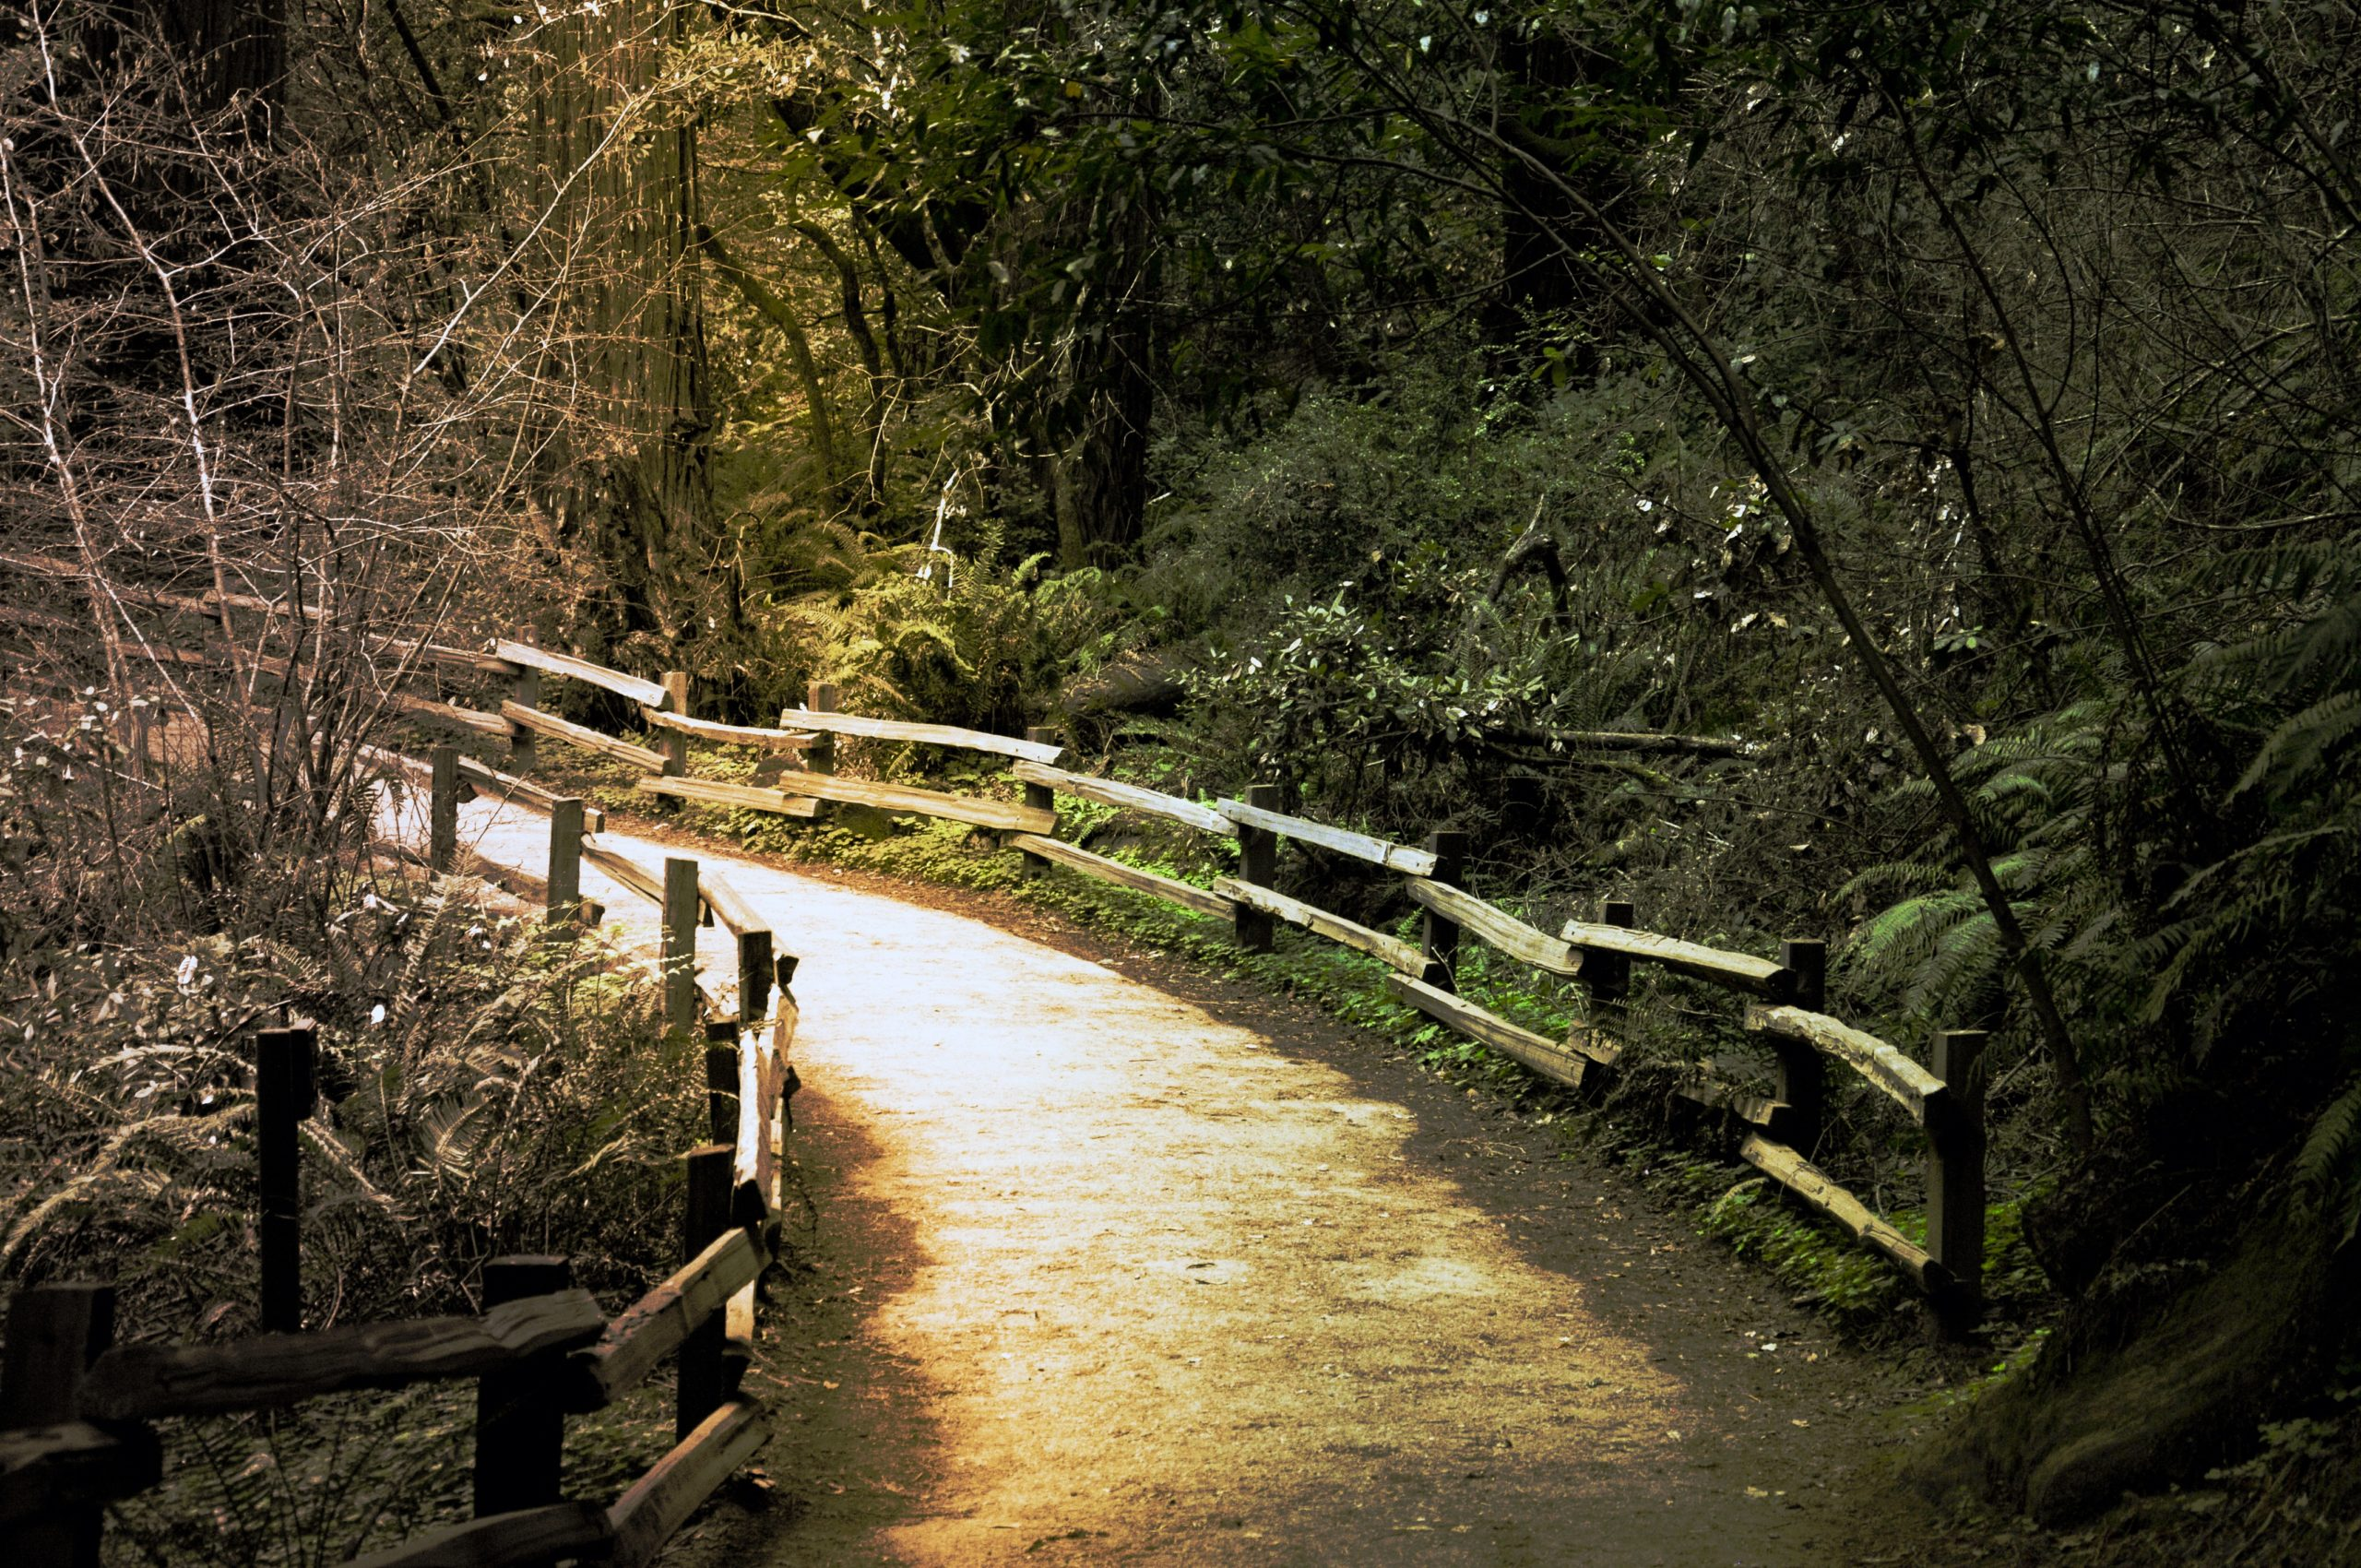 Hiking trail in Muir Woods